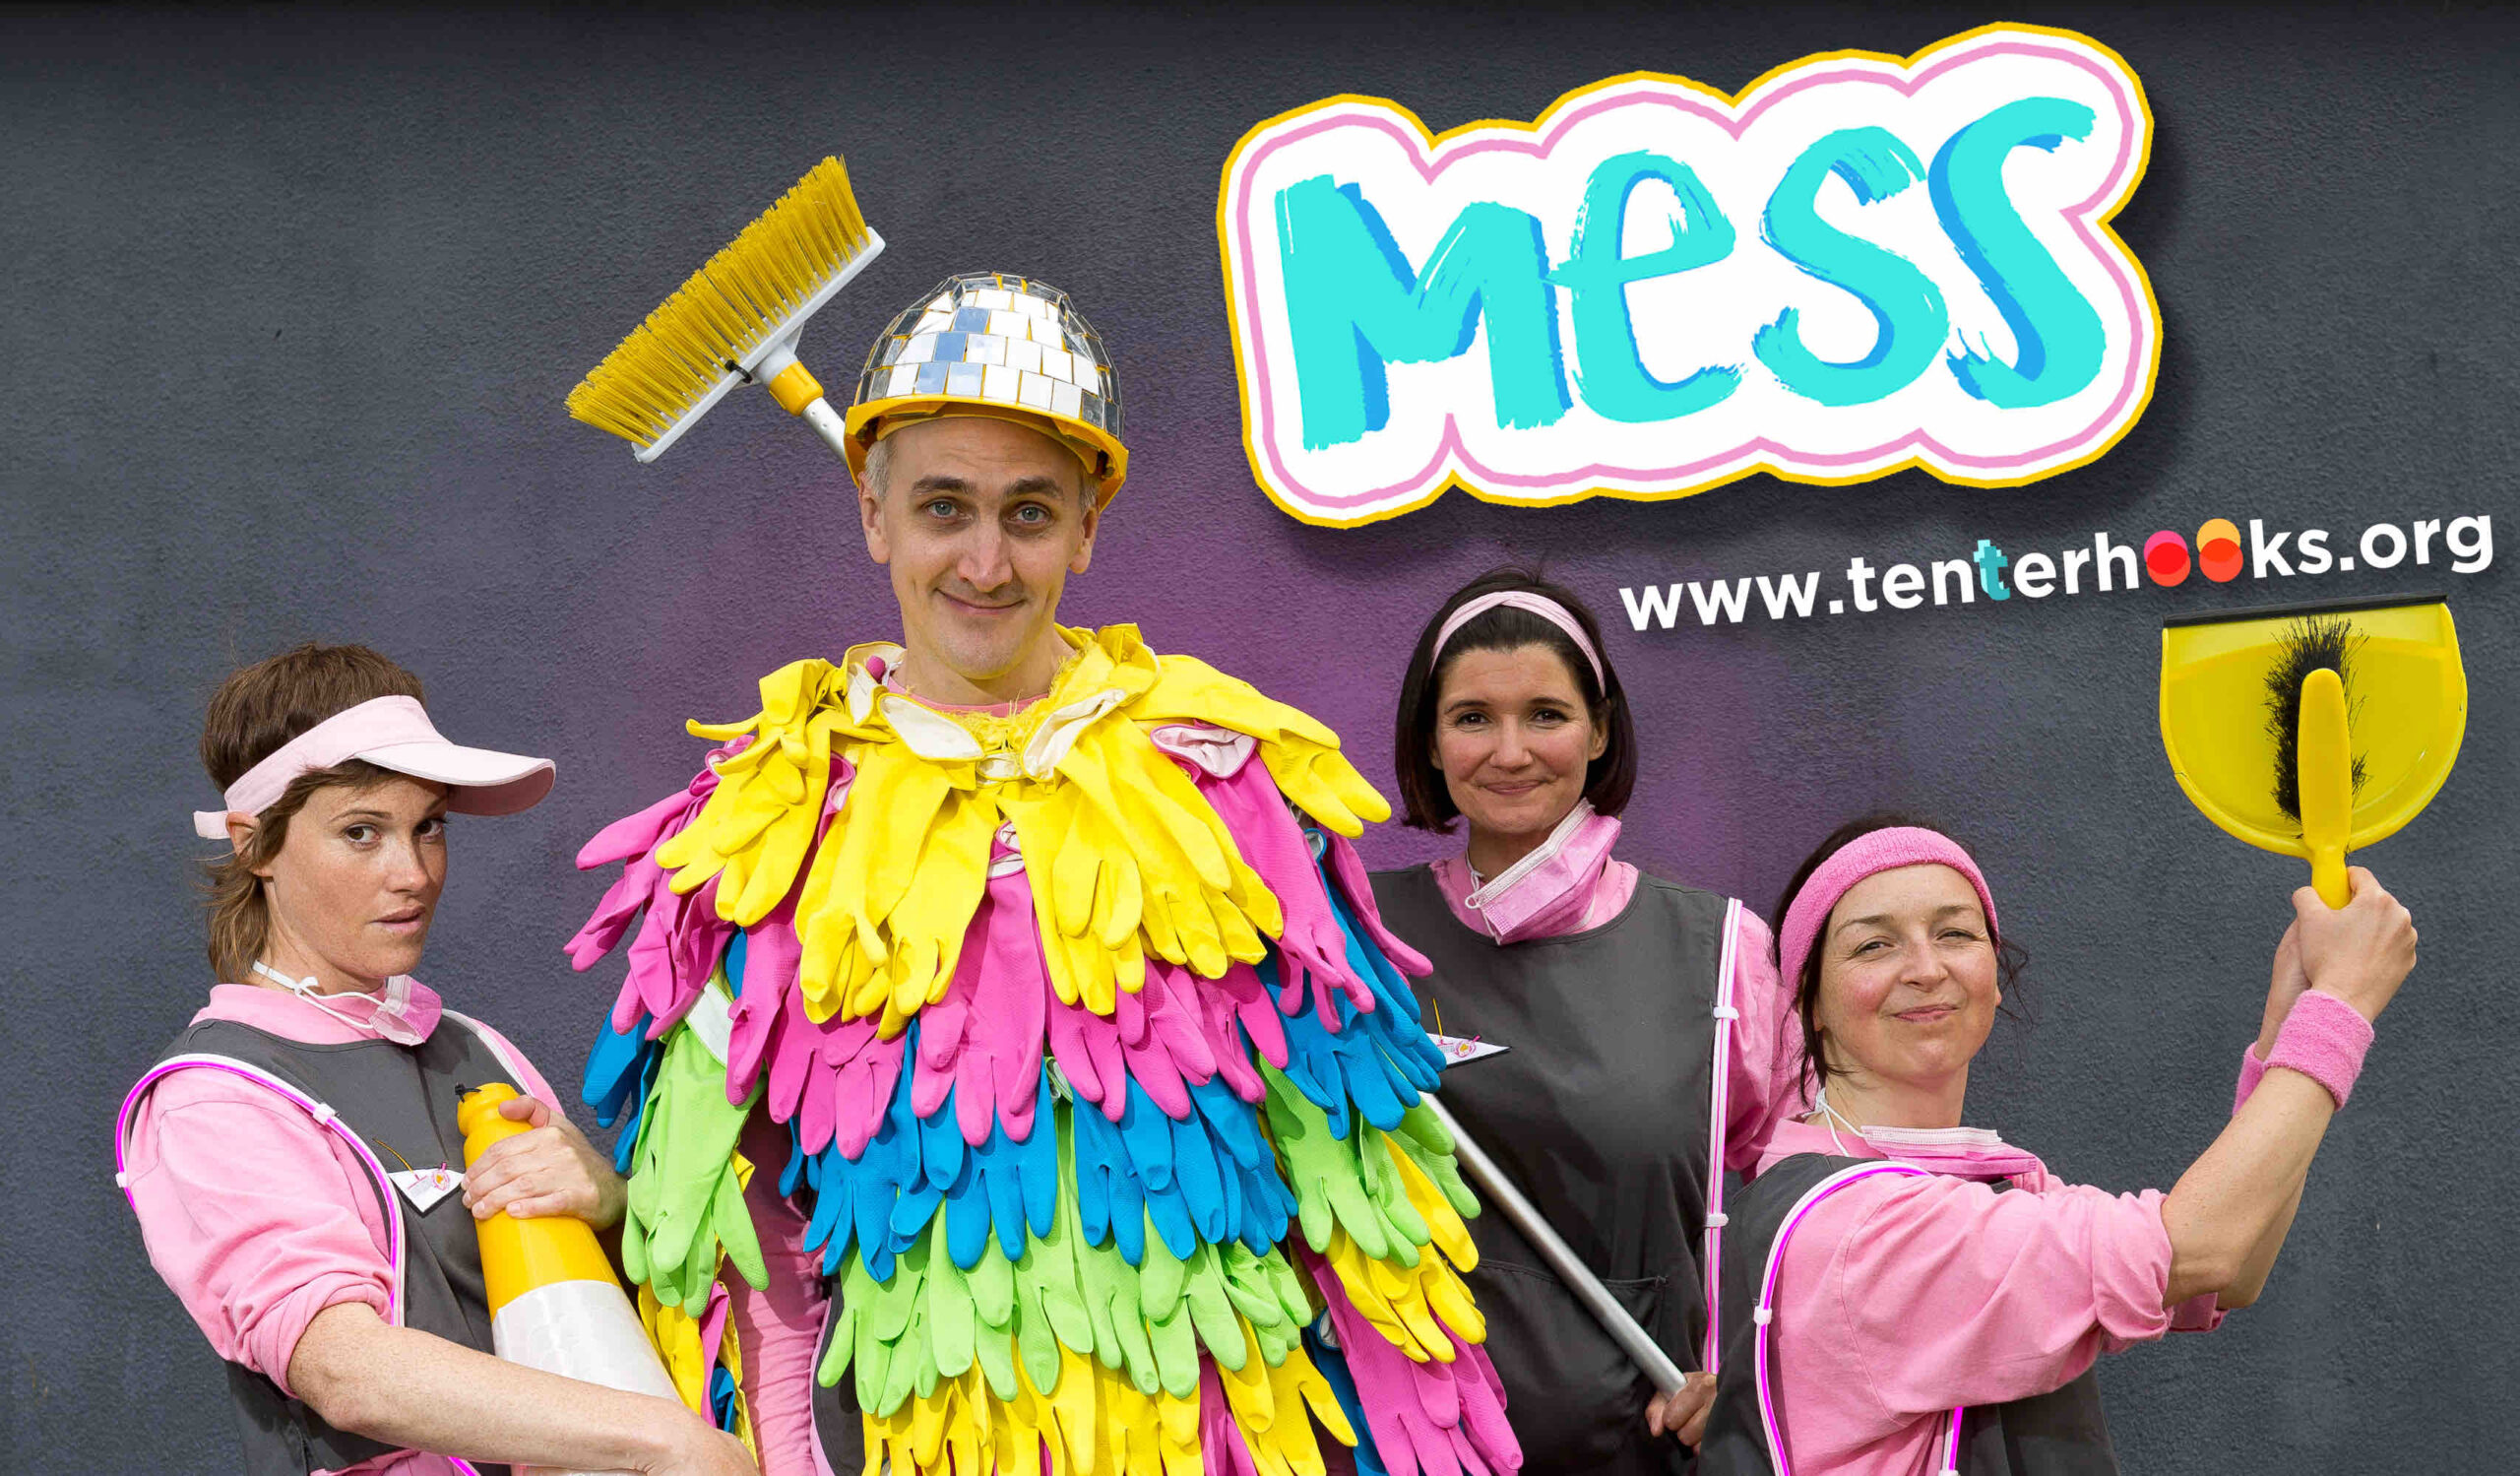 Four caretakers pose with their cleaning implements in front of a painted grey wall as if they are in a rock band. Three of caretakers are wearing a matching light pink uniform with a grey tabard over the top and they are posed around the 'Chief' in the middle of the frame who is wearing a yellow hard hat covered in square mirrors and a poncho made of different coloured rubber gloves - green, pink, yellow and blue. The caretaker on the right is carrying a large yellow traffic cone, to the left of the 'Chief' the caretaker is holding a broom with yellow bristles, and to the right of them, the caretaker is presenting a dustpan and brush out to the side. The 'Mess' logo is to the left at the top of the page, and the Tenterhooks website is written underneath, www.tenterhooks.org